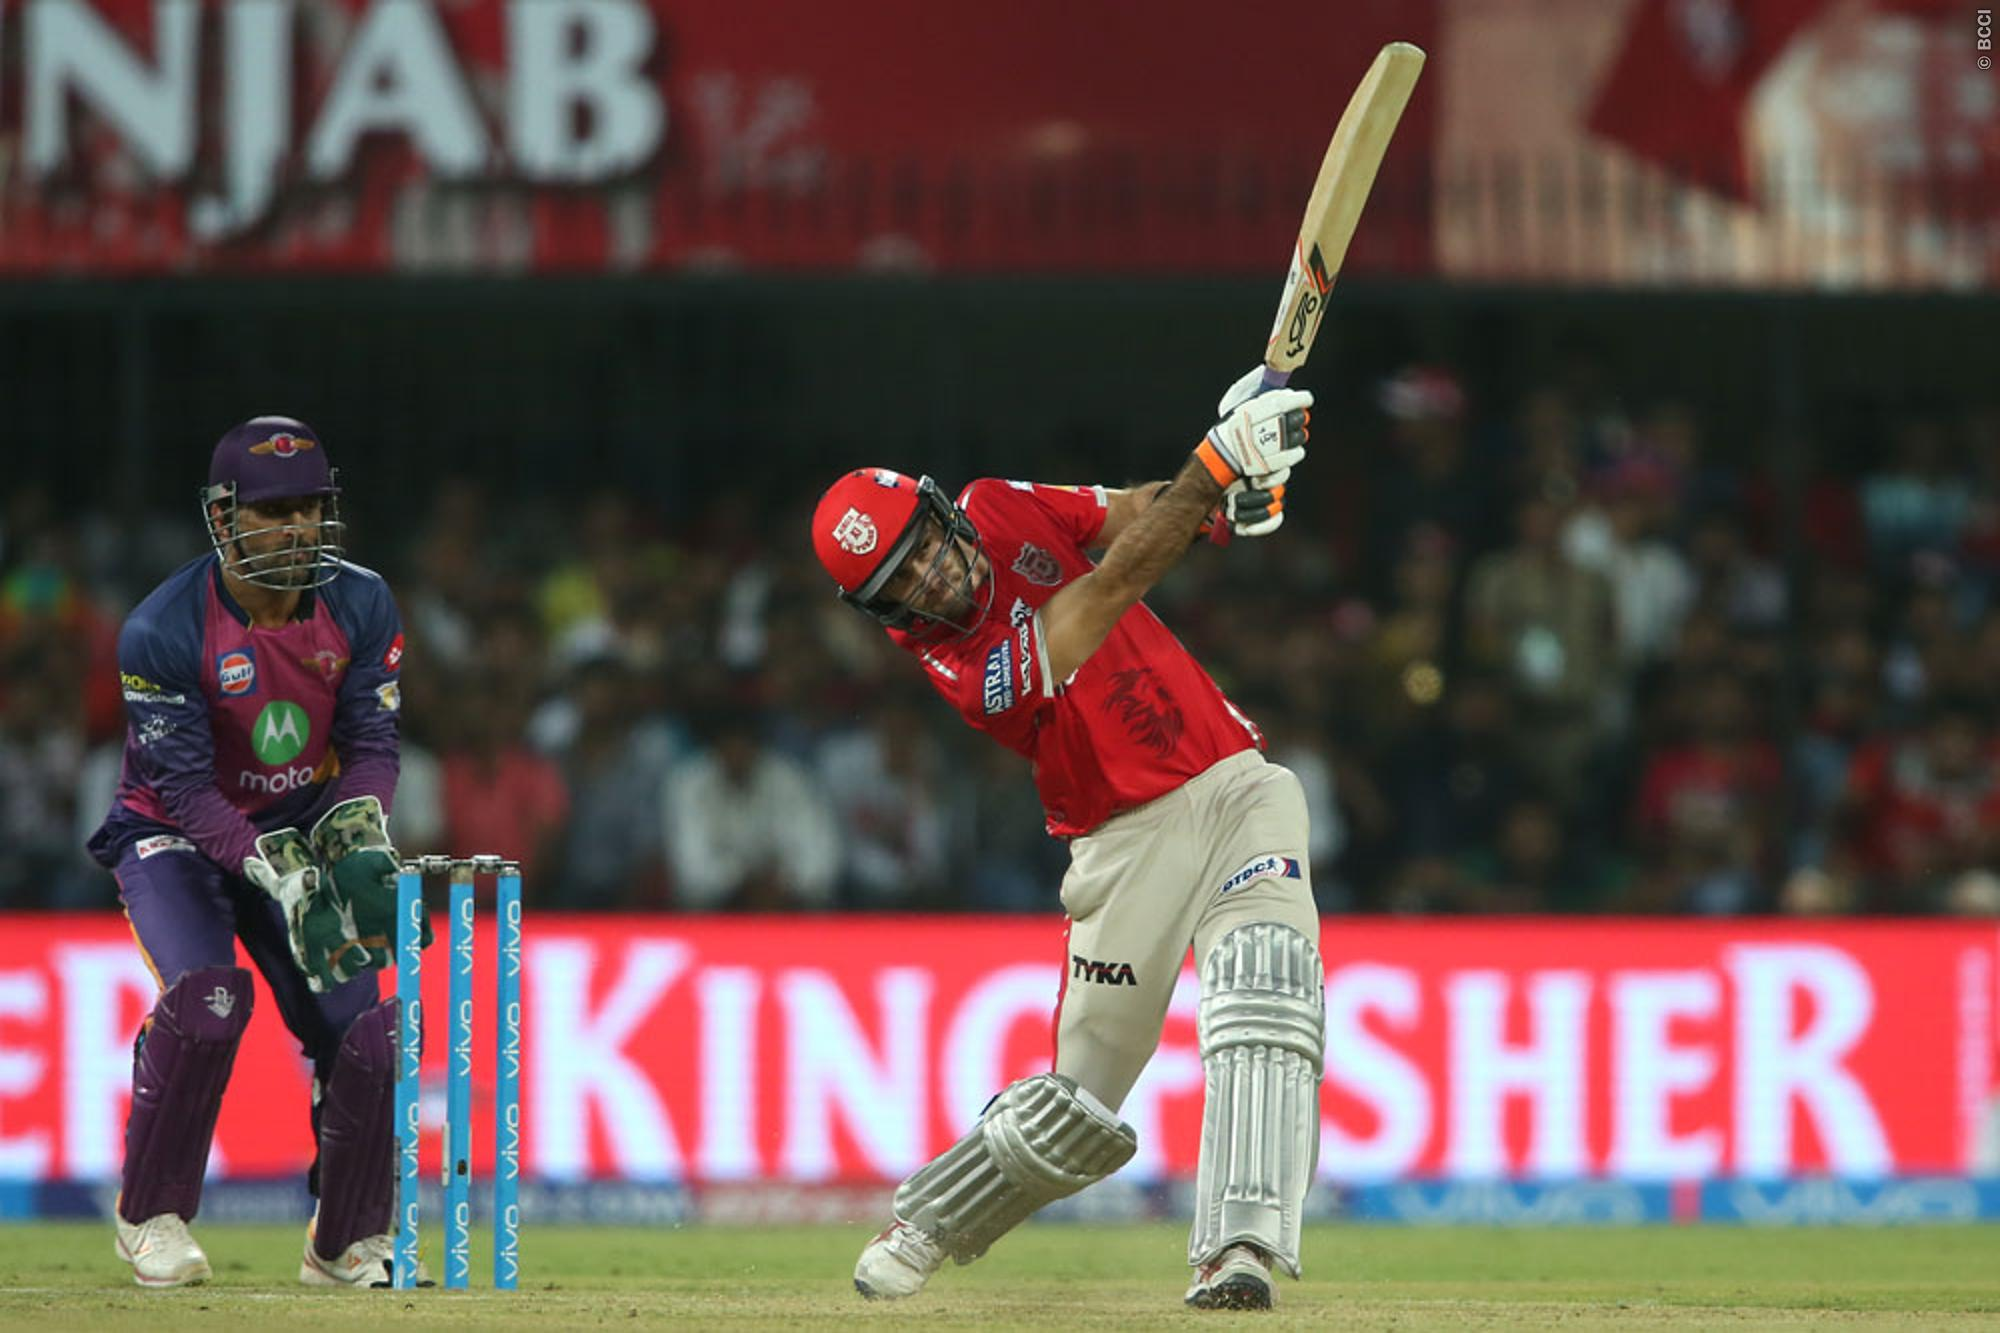 IPL 2017 Result: Glenn Maxwell Helps Kings XI in Beating Supergiants